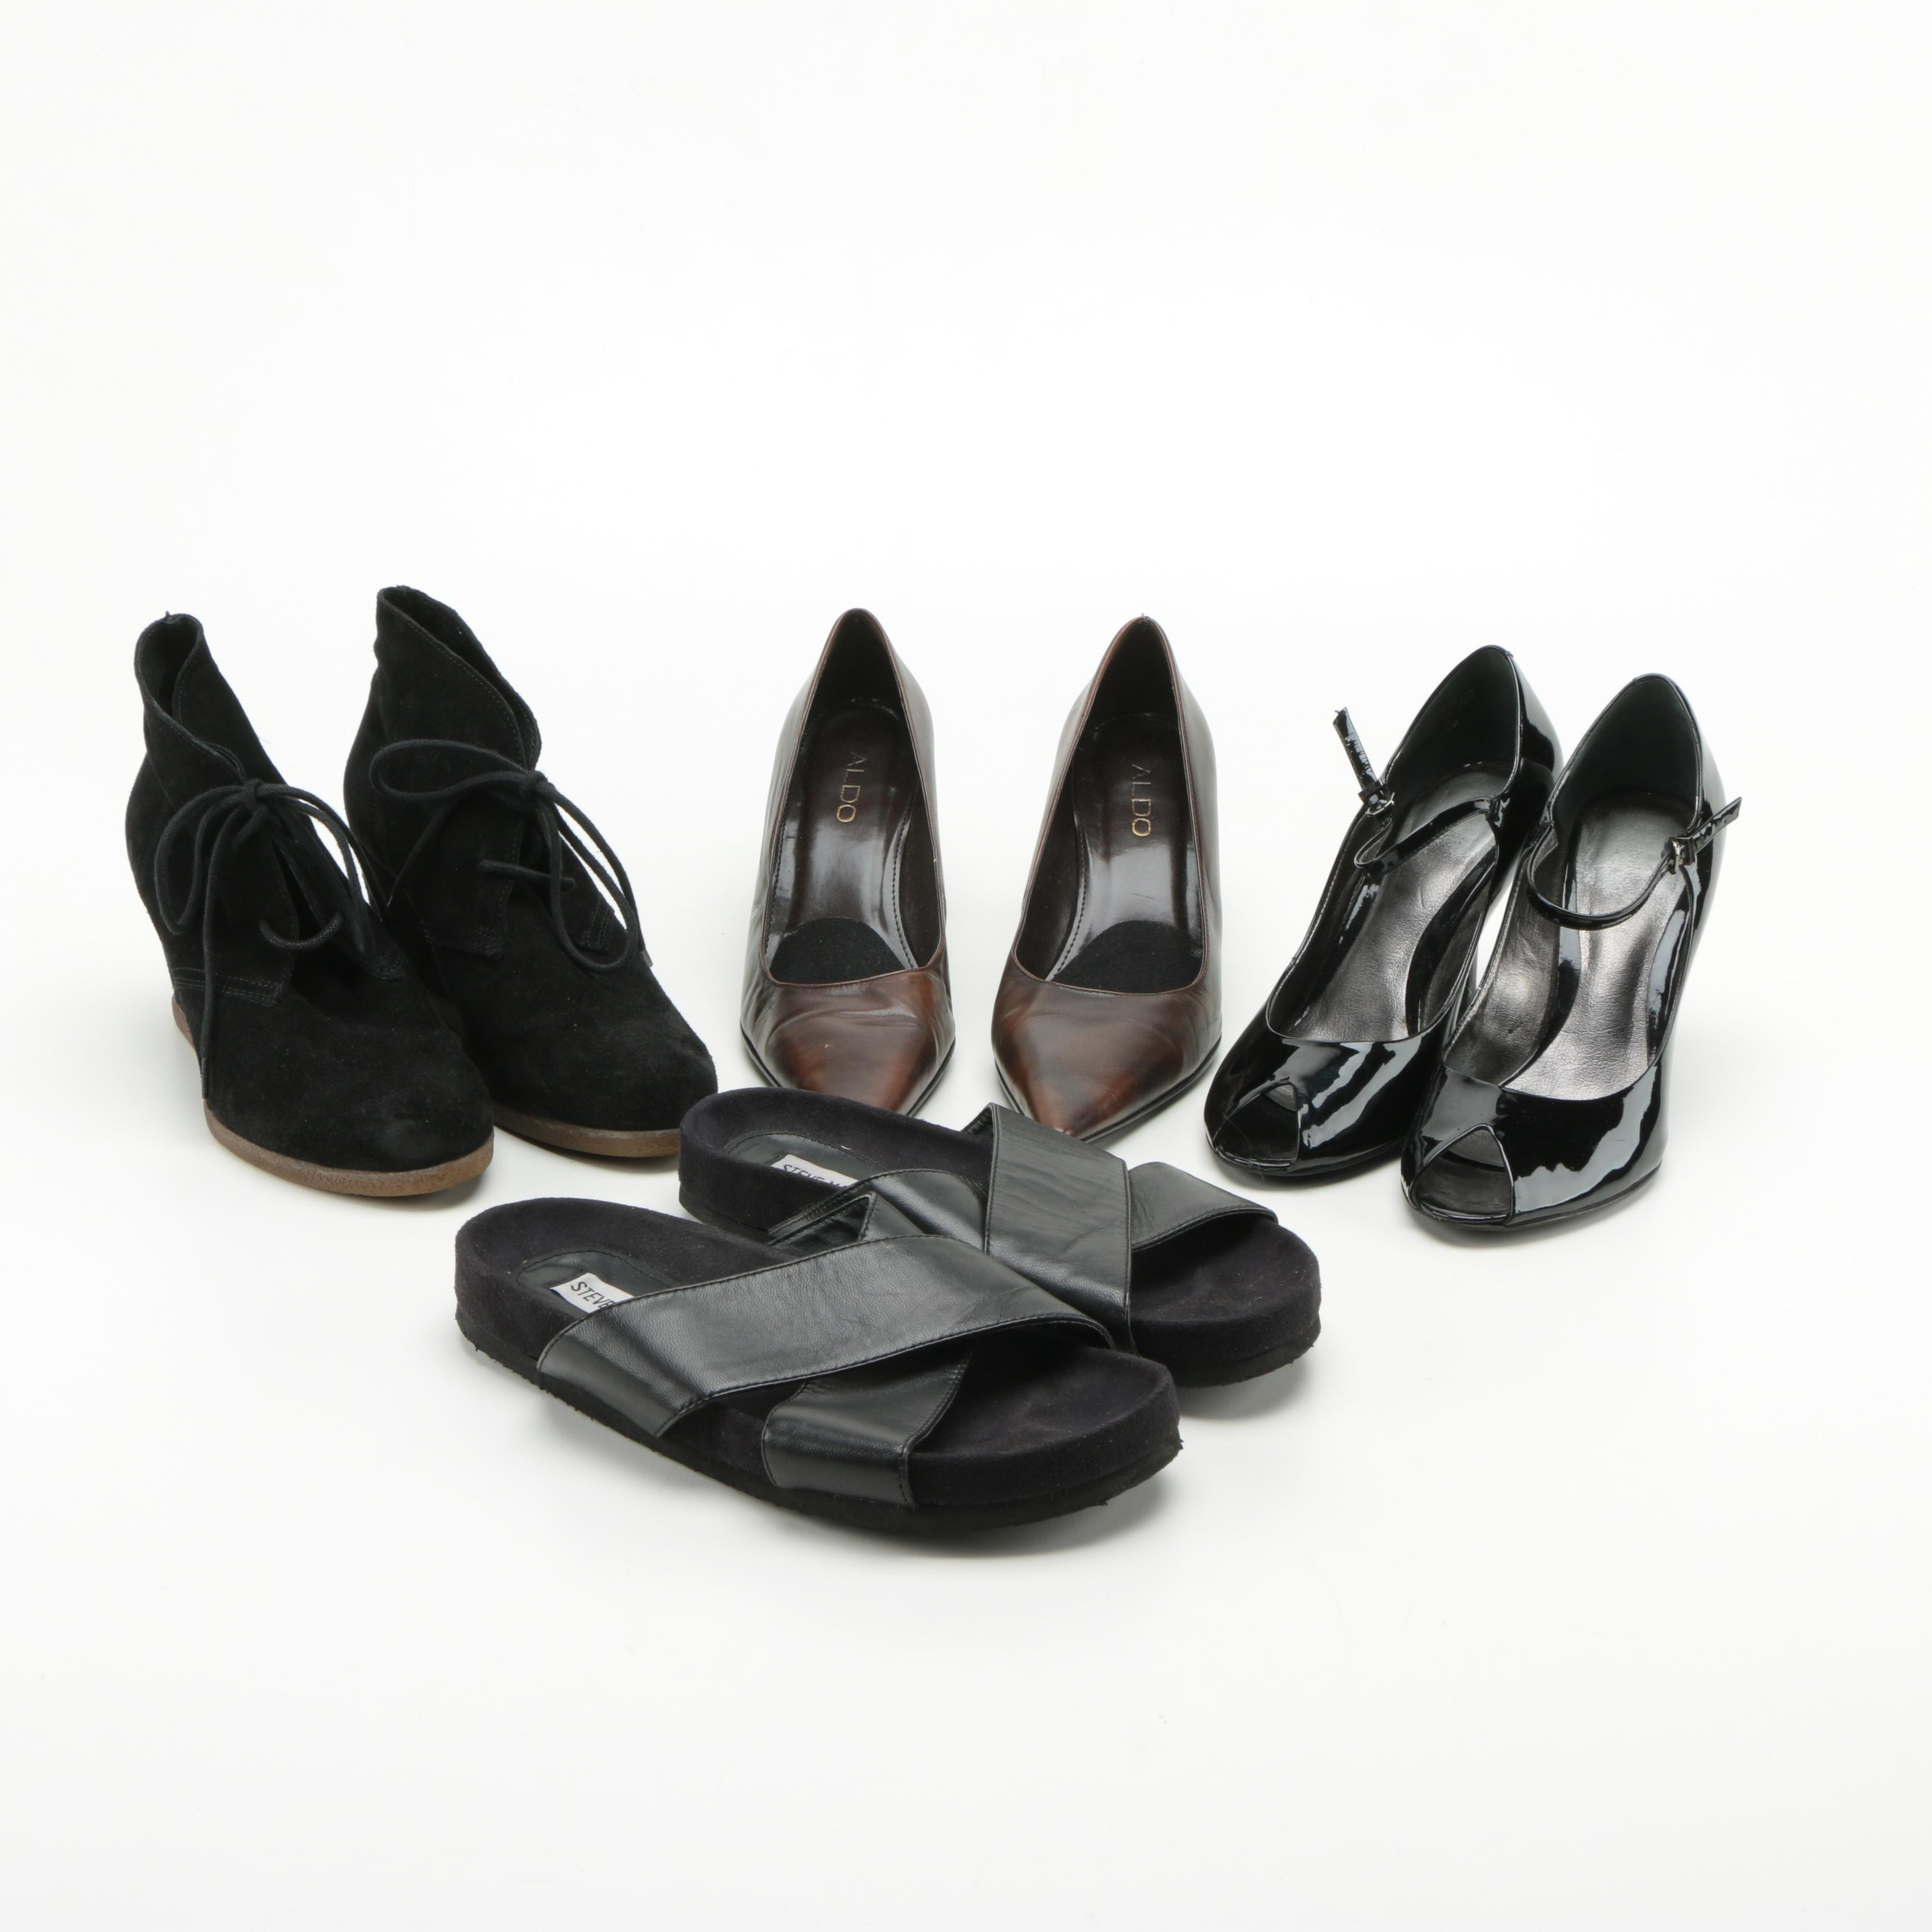 Collection of Women's Shoes Including Steve Madden